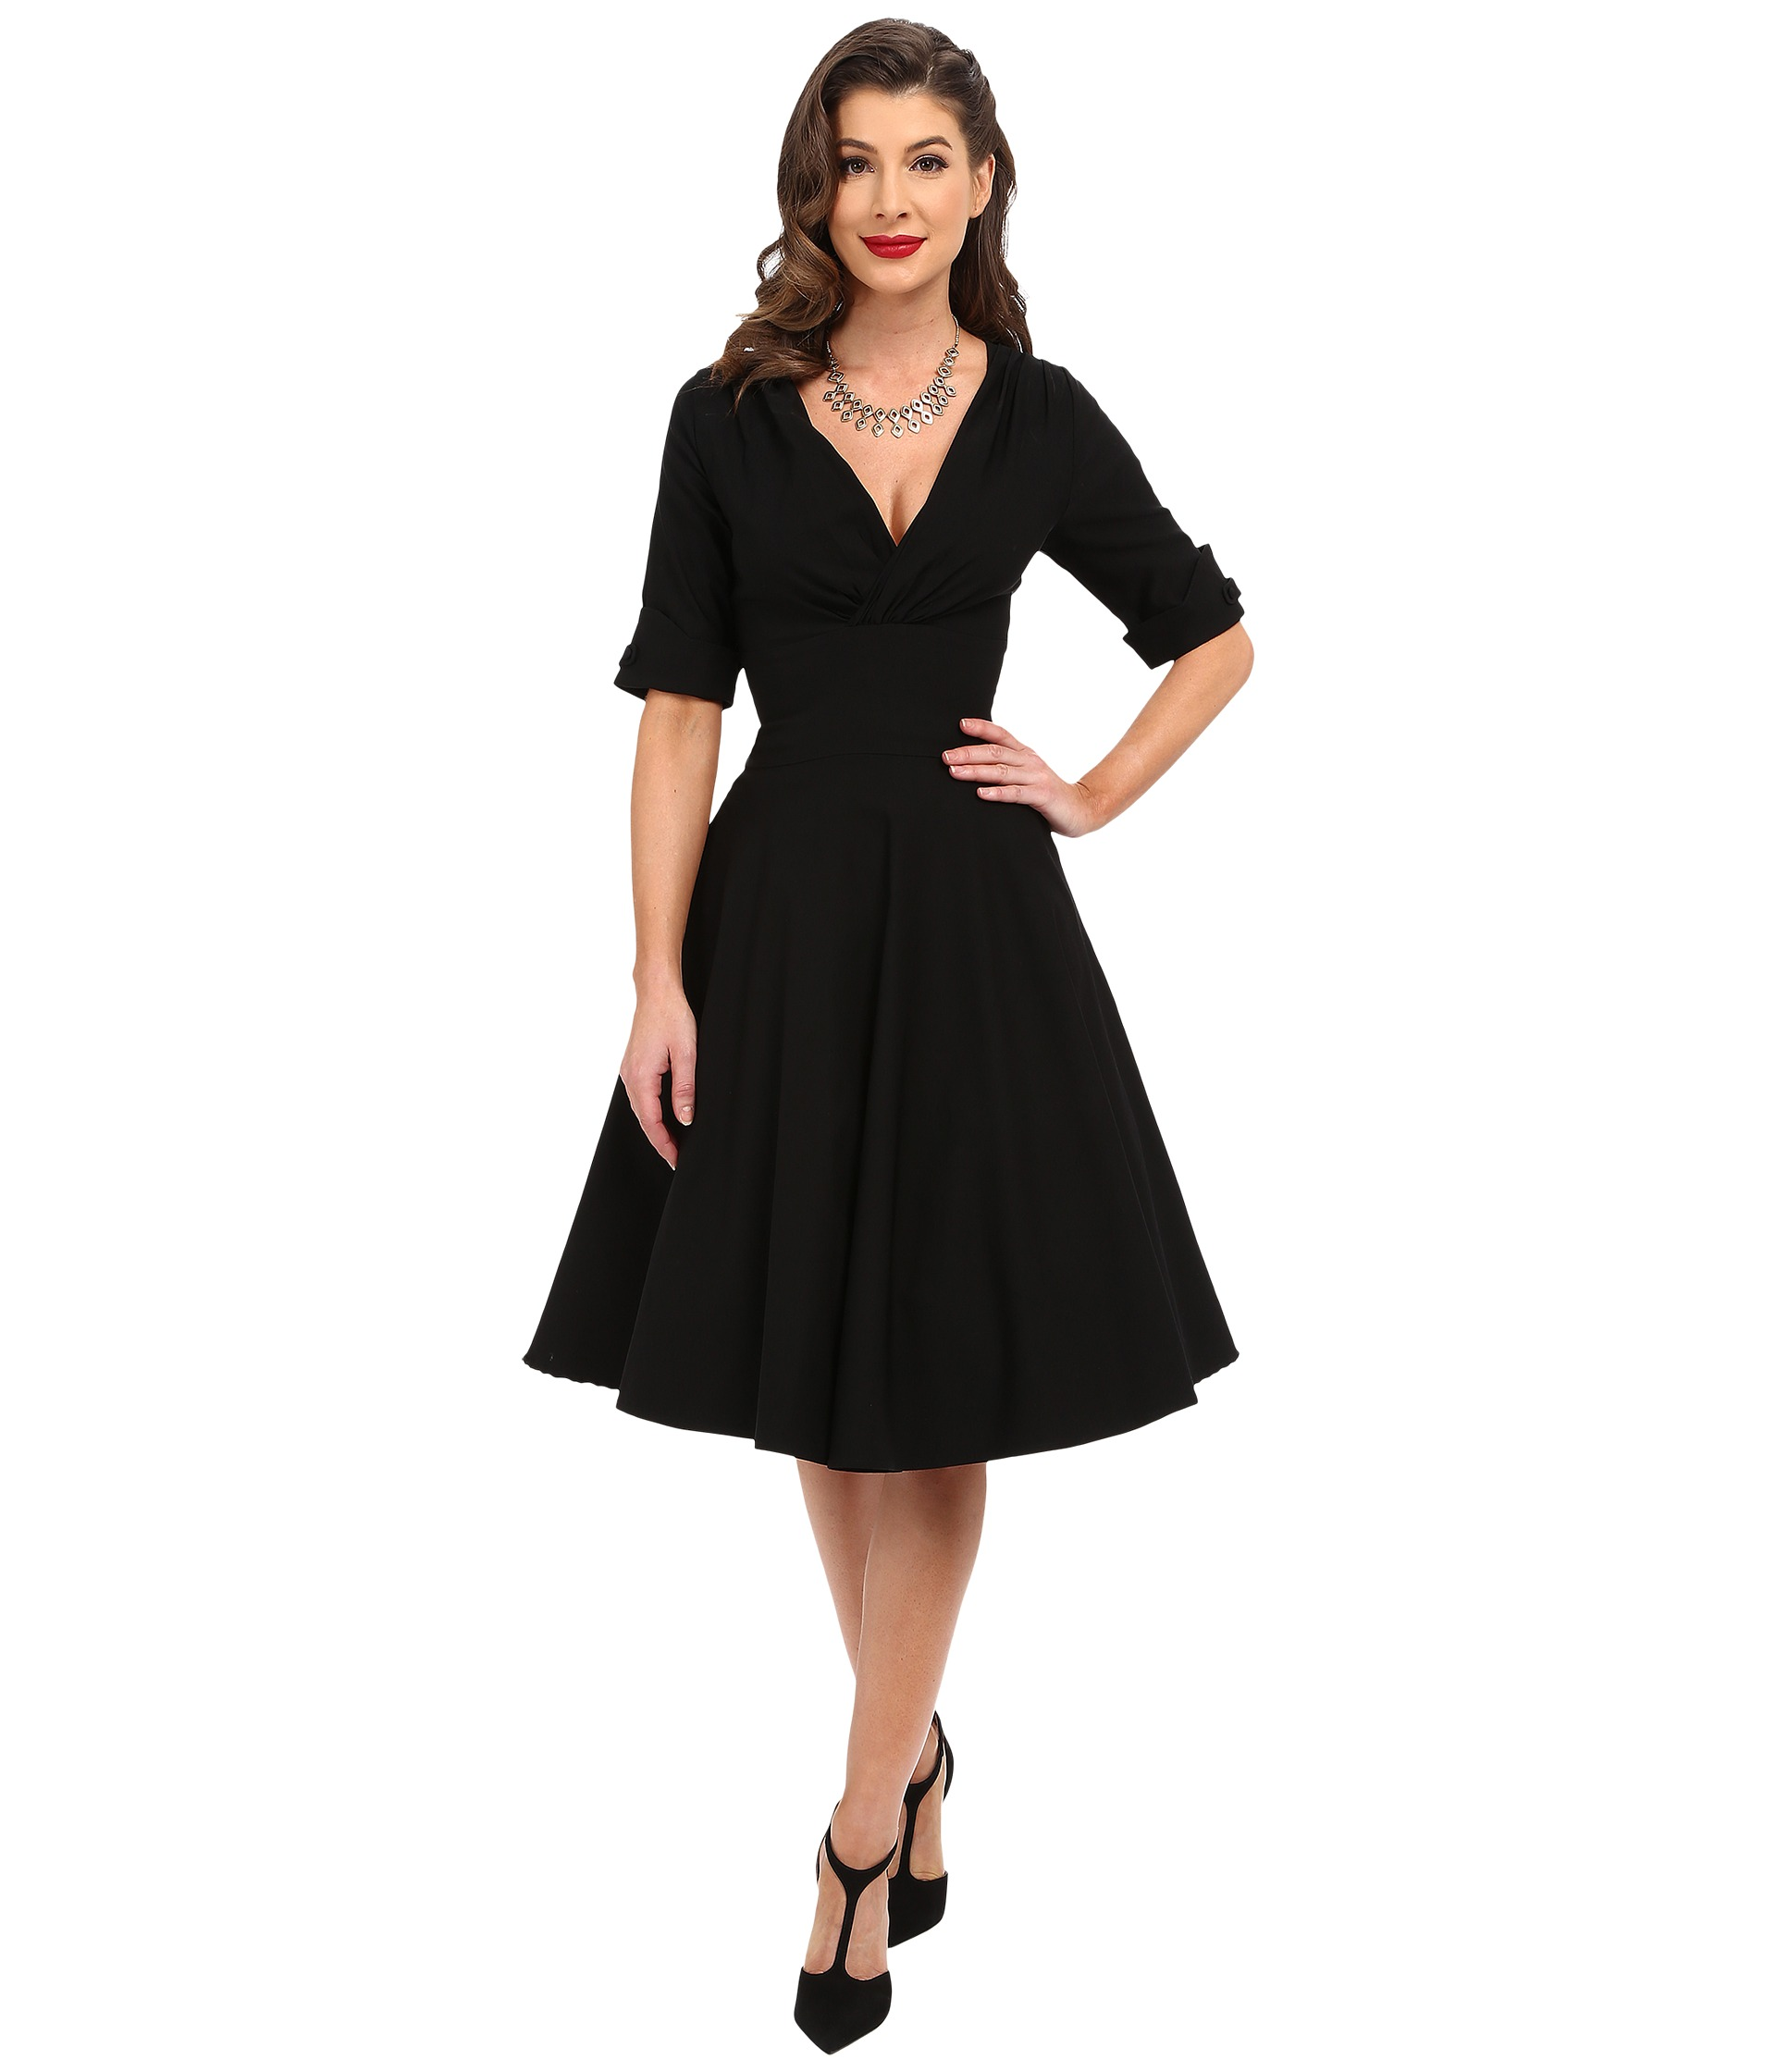 Unique vintage 3 4 sleeve delores swing dress at for 3 4 sleeve wedding guest dress